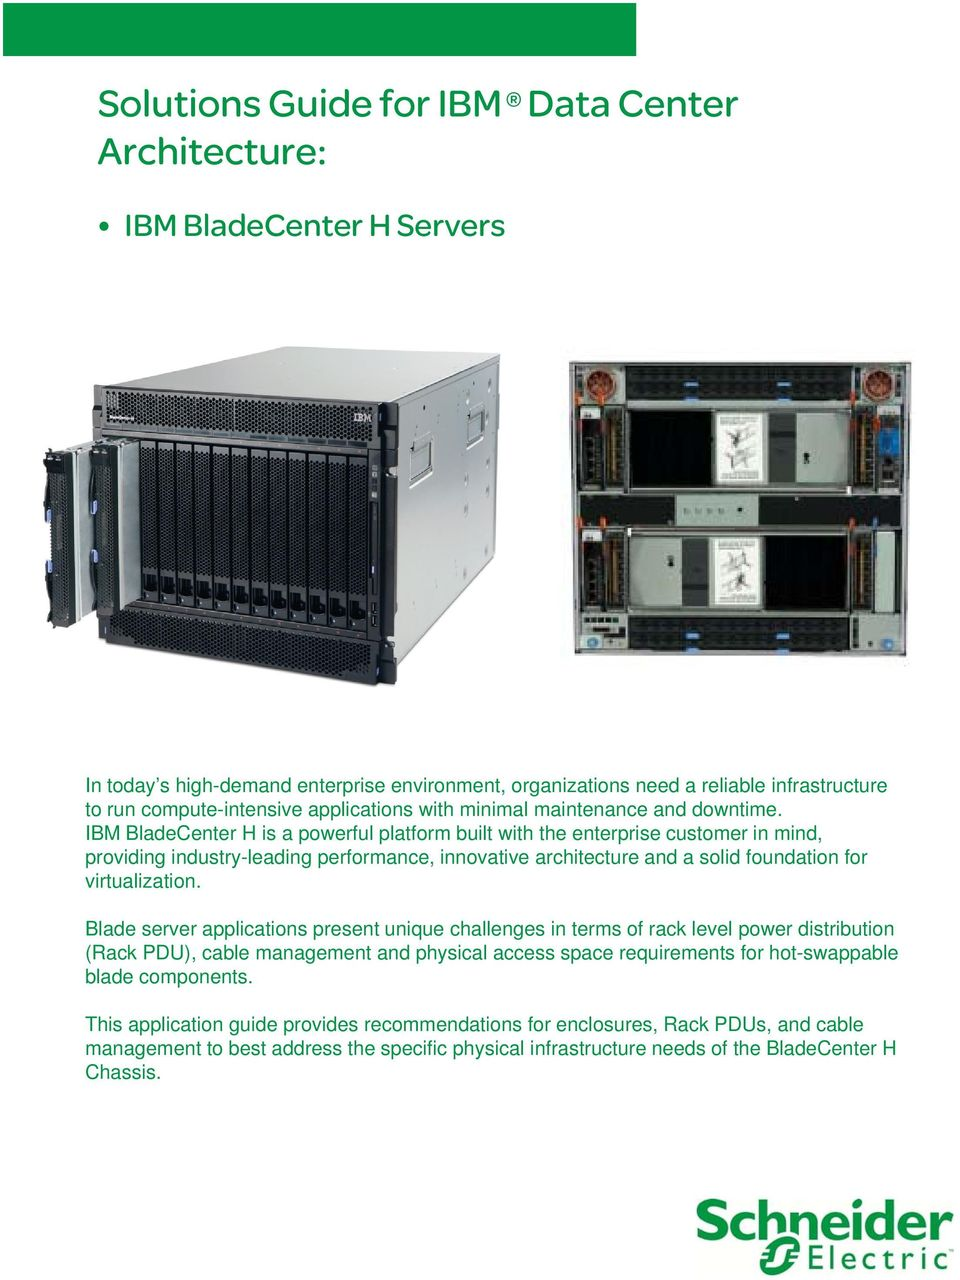 IBM BladeCenter H is a powerful platform built with the enterprise customer in mind, providing industry-leading performance, innovative architecture and a solid foundation for virtualization.